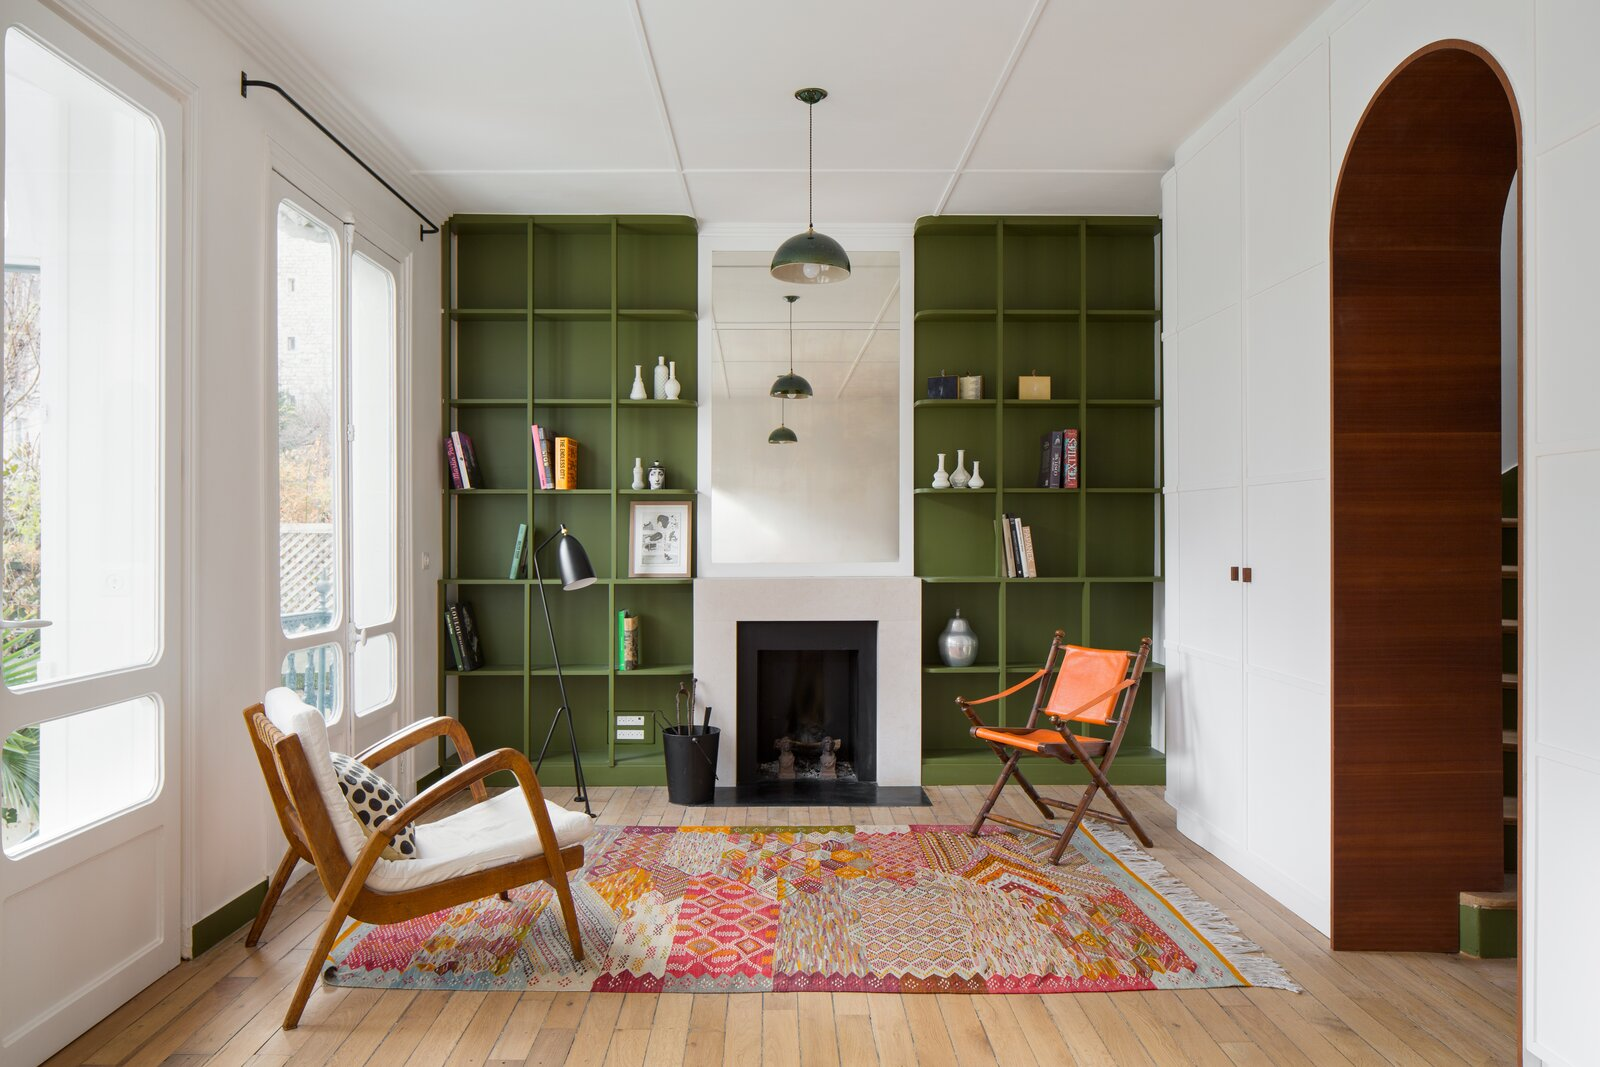 A Vibrant Retrofit Breathes New Life Into a Dilapidated 19th-Century House in Paris